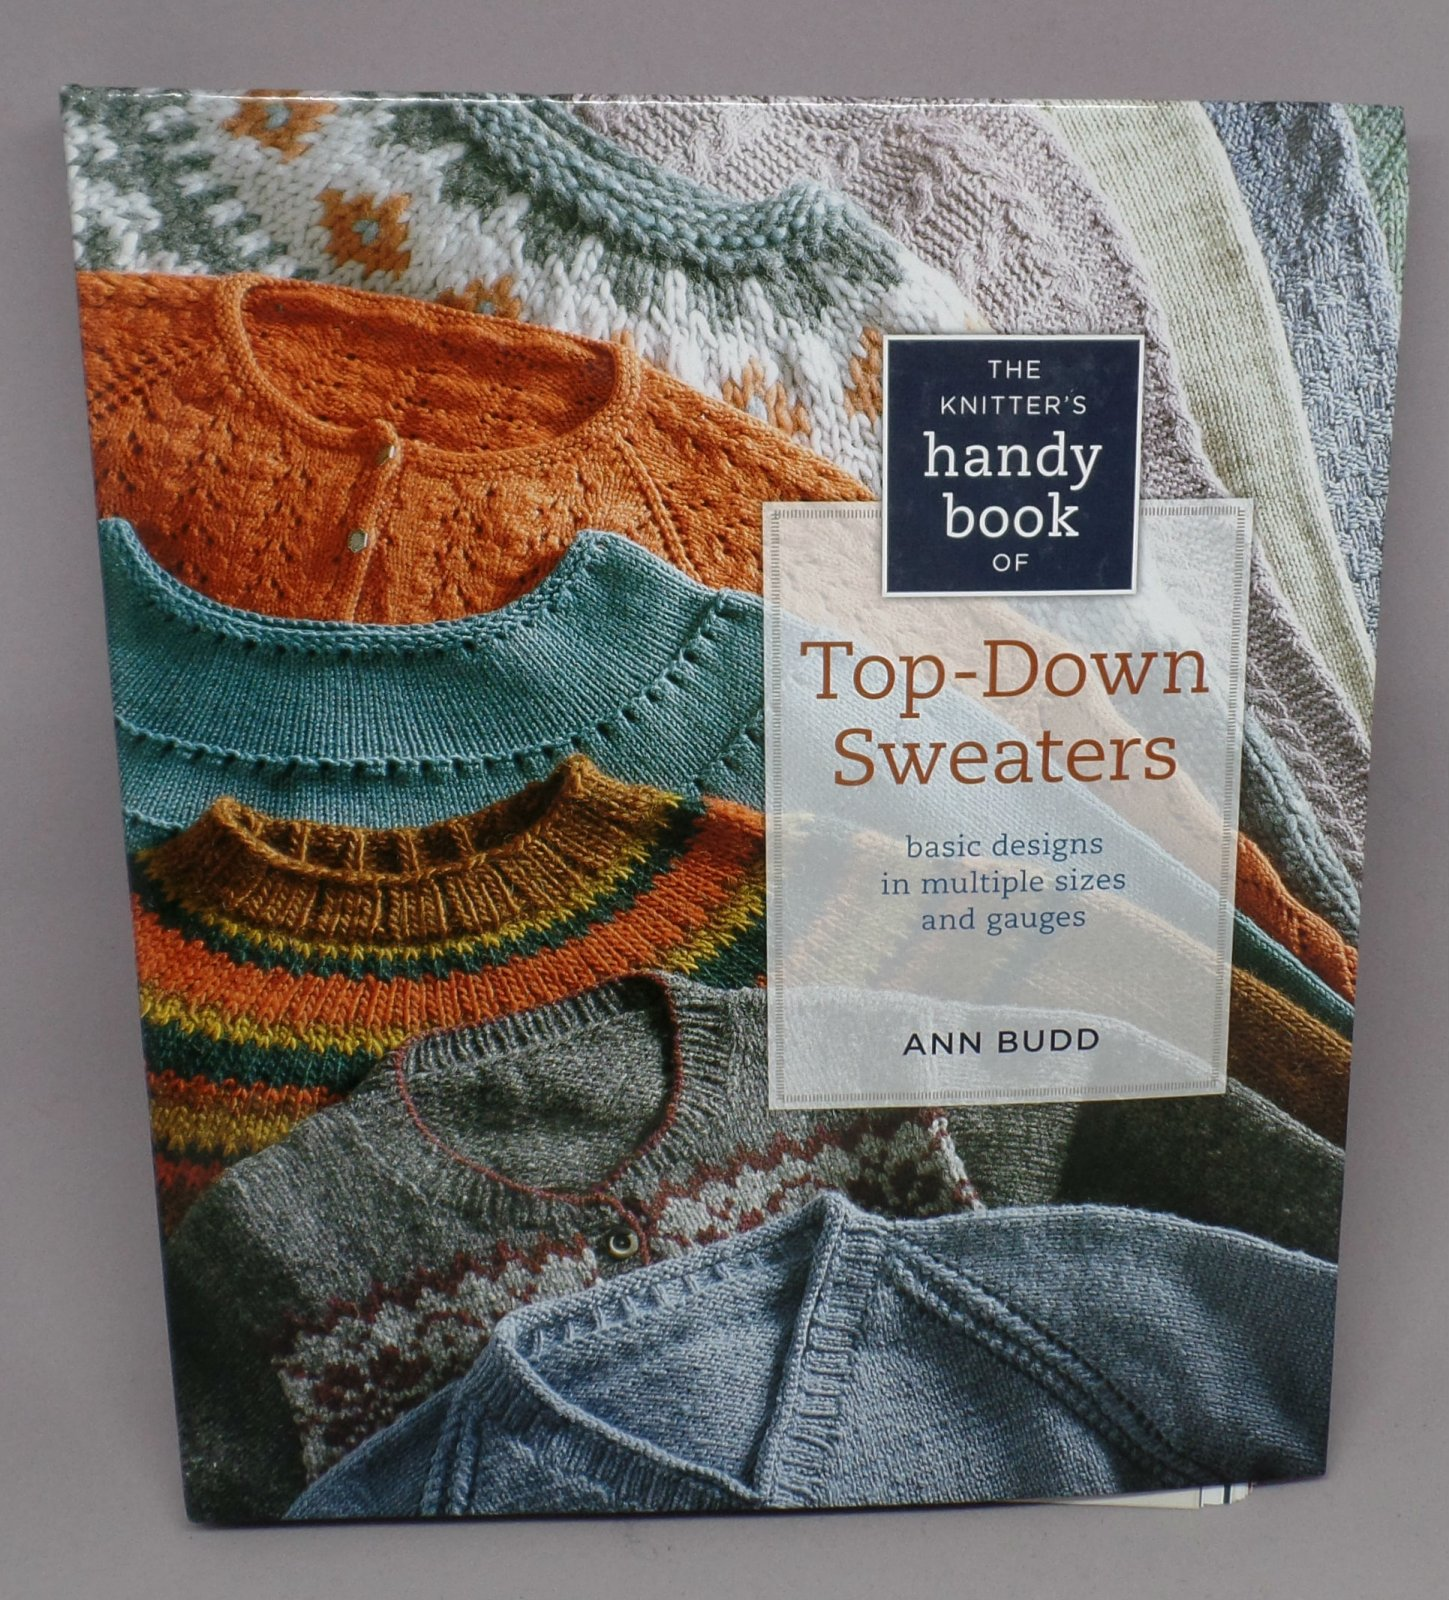 f66852fad43f Knitter s Handy Book of Top-Down Sweater Patterns